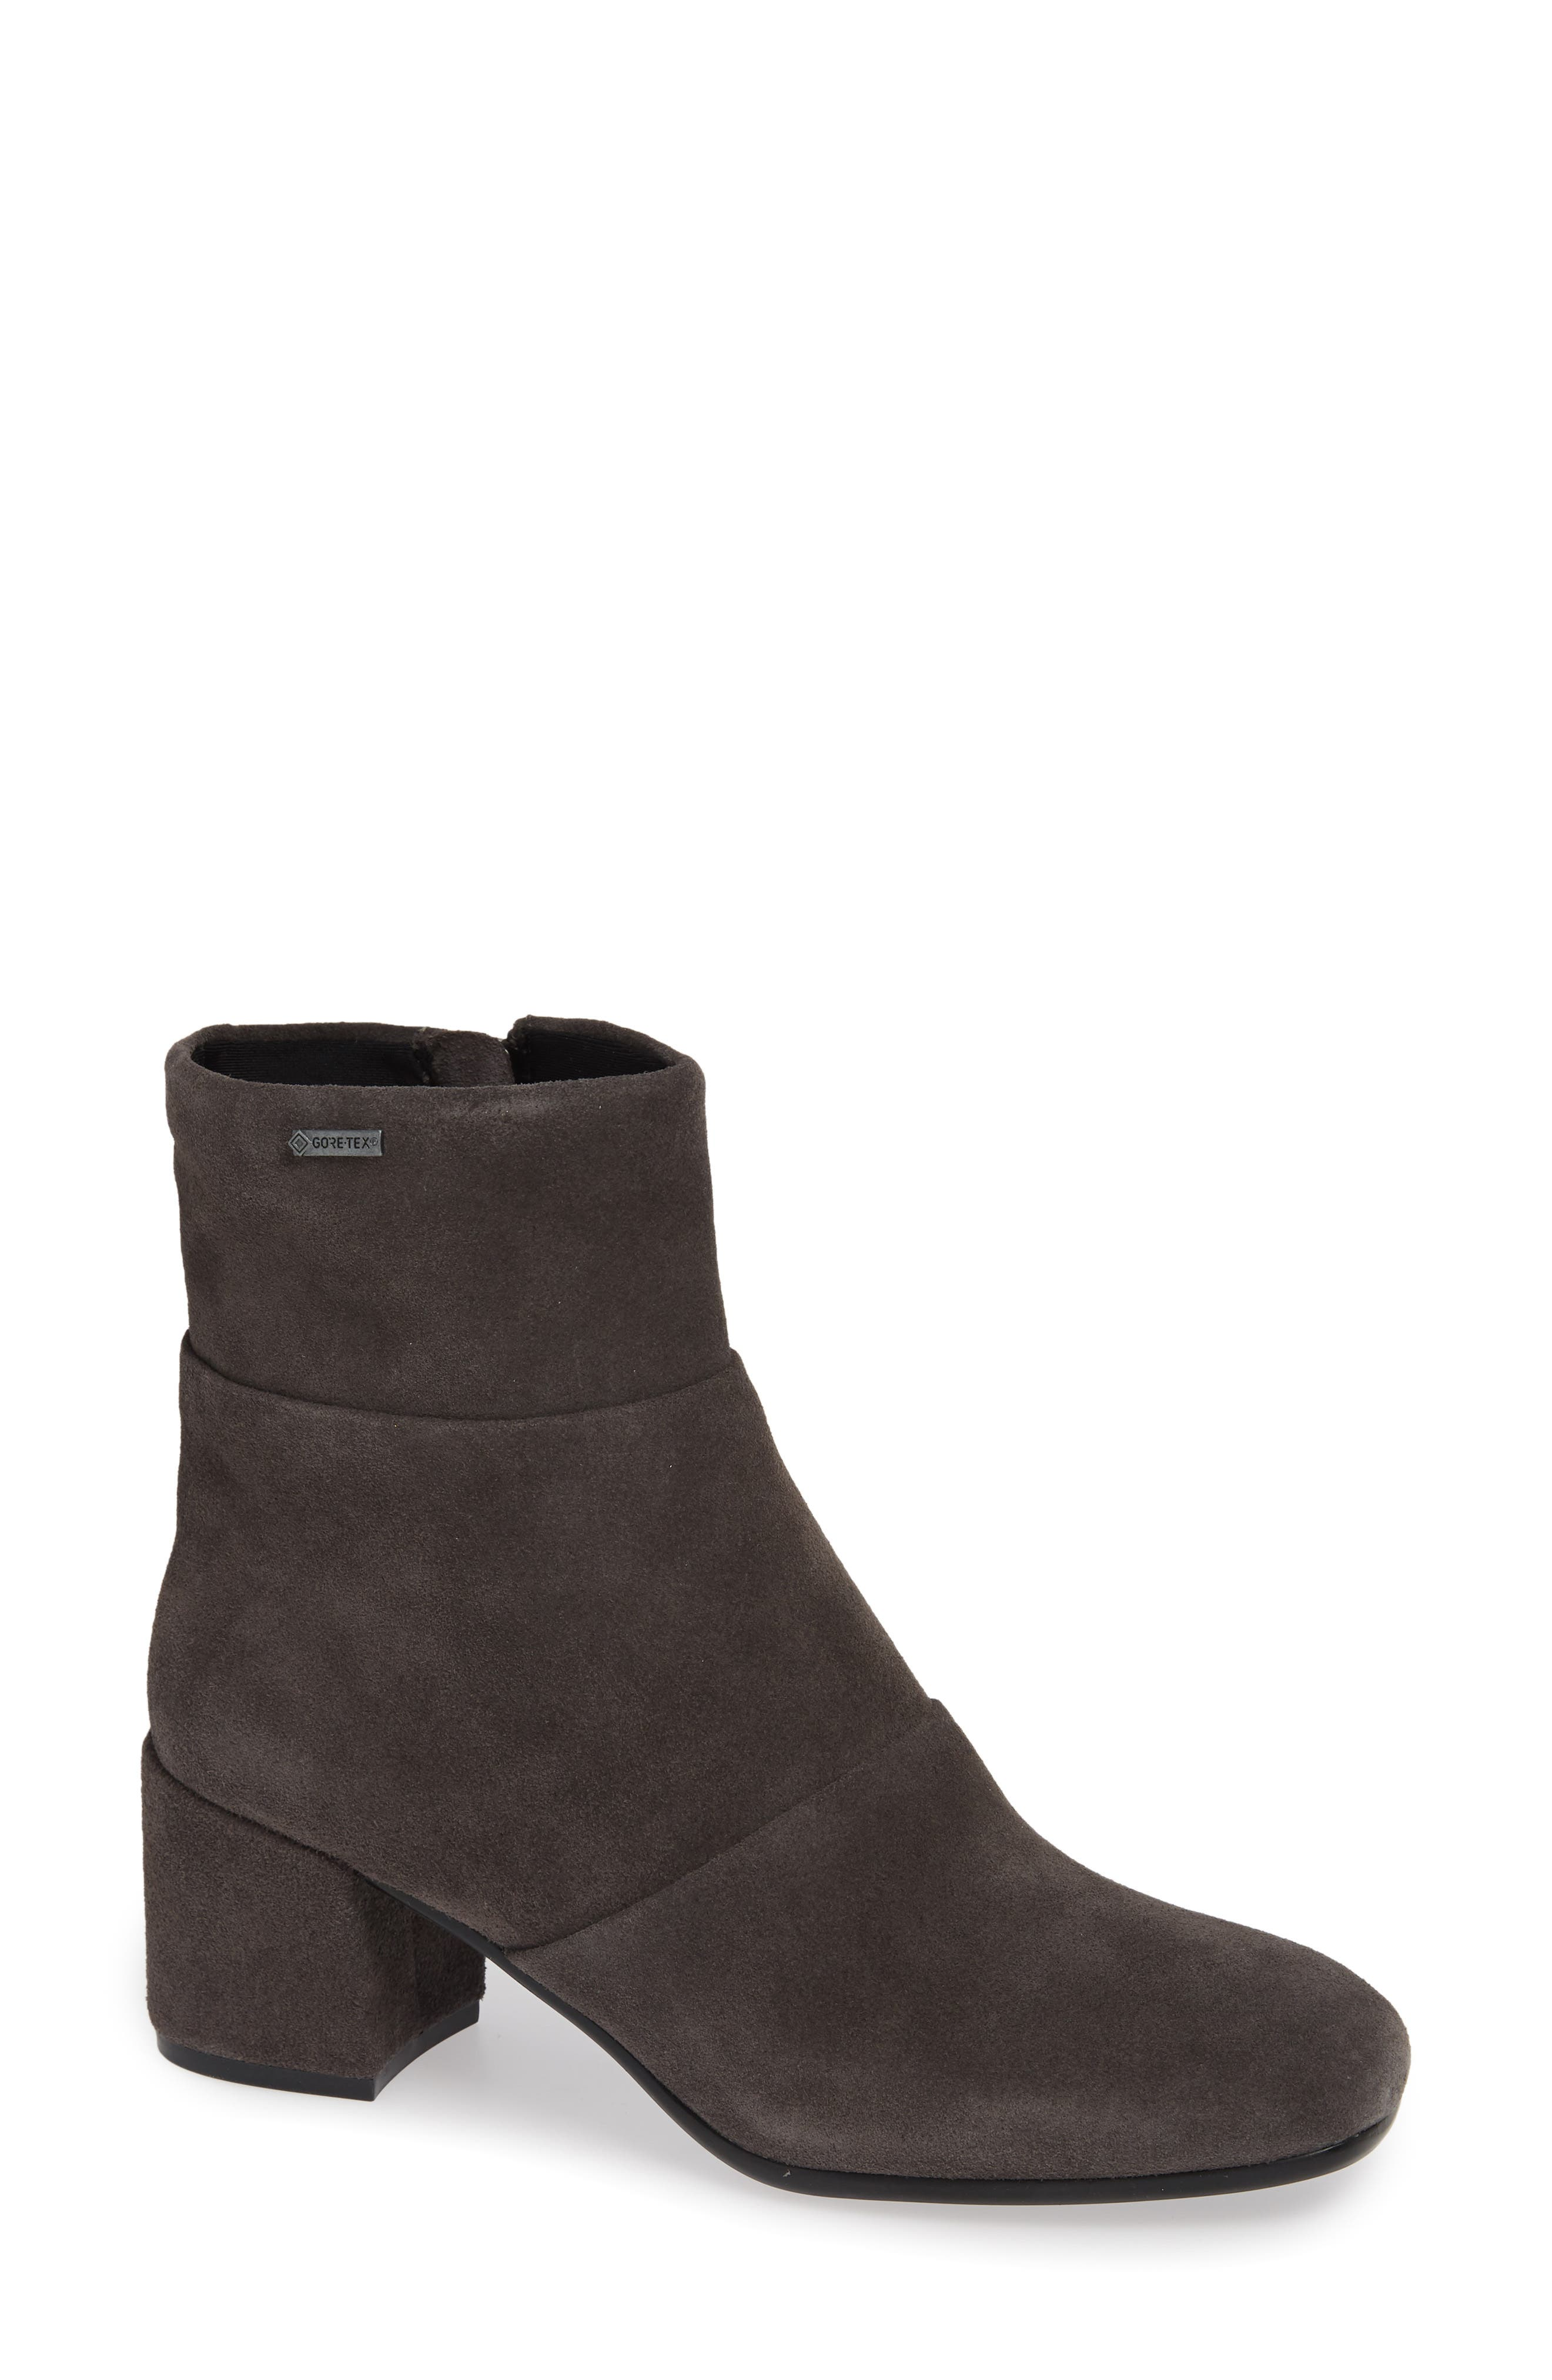 Kenneth Cole New York Eryc Suede Bootie, Grey